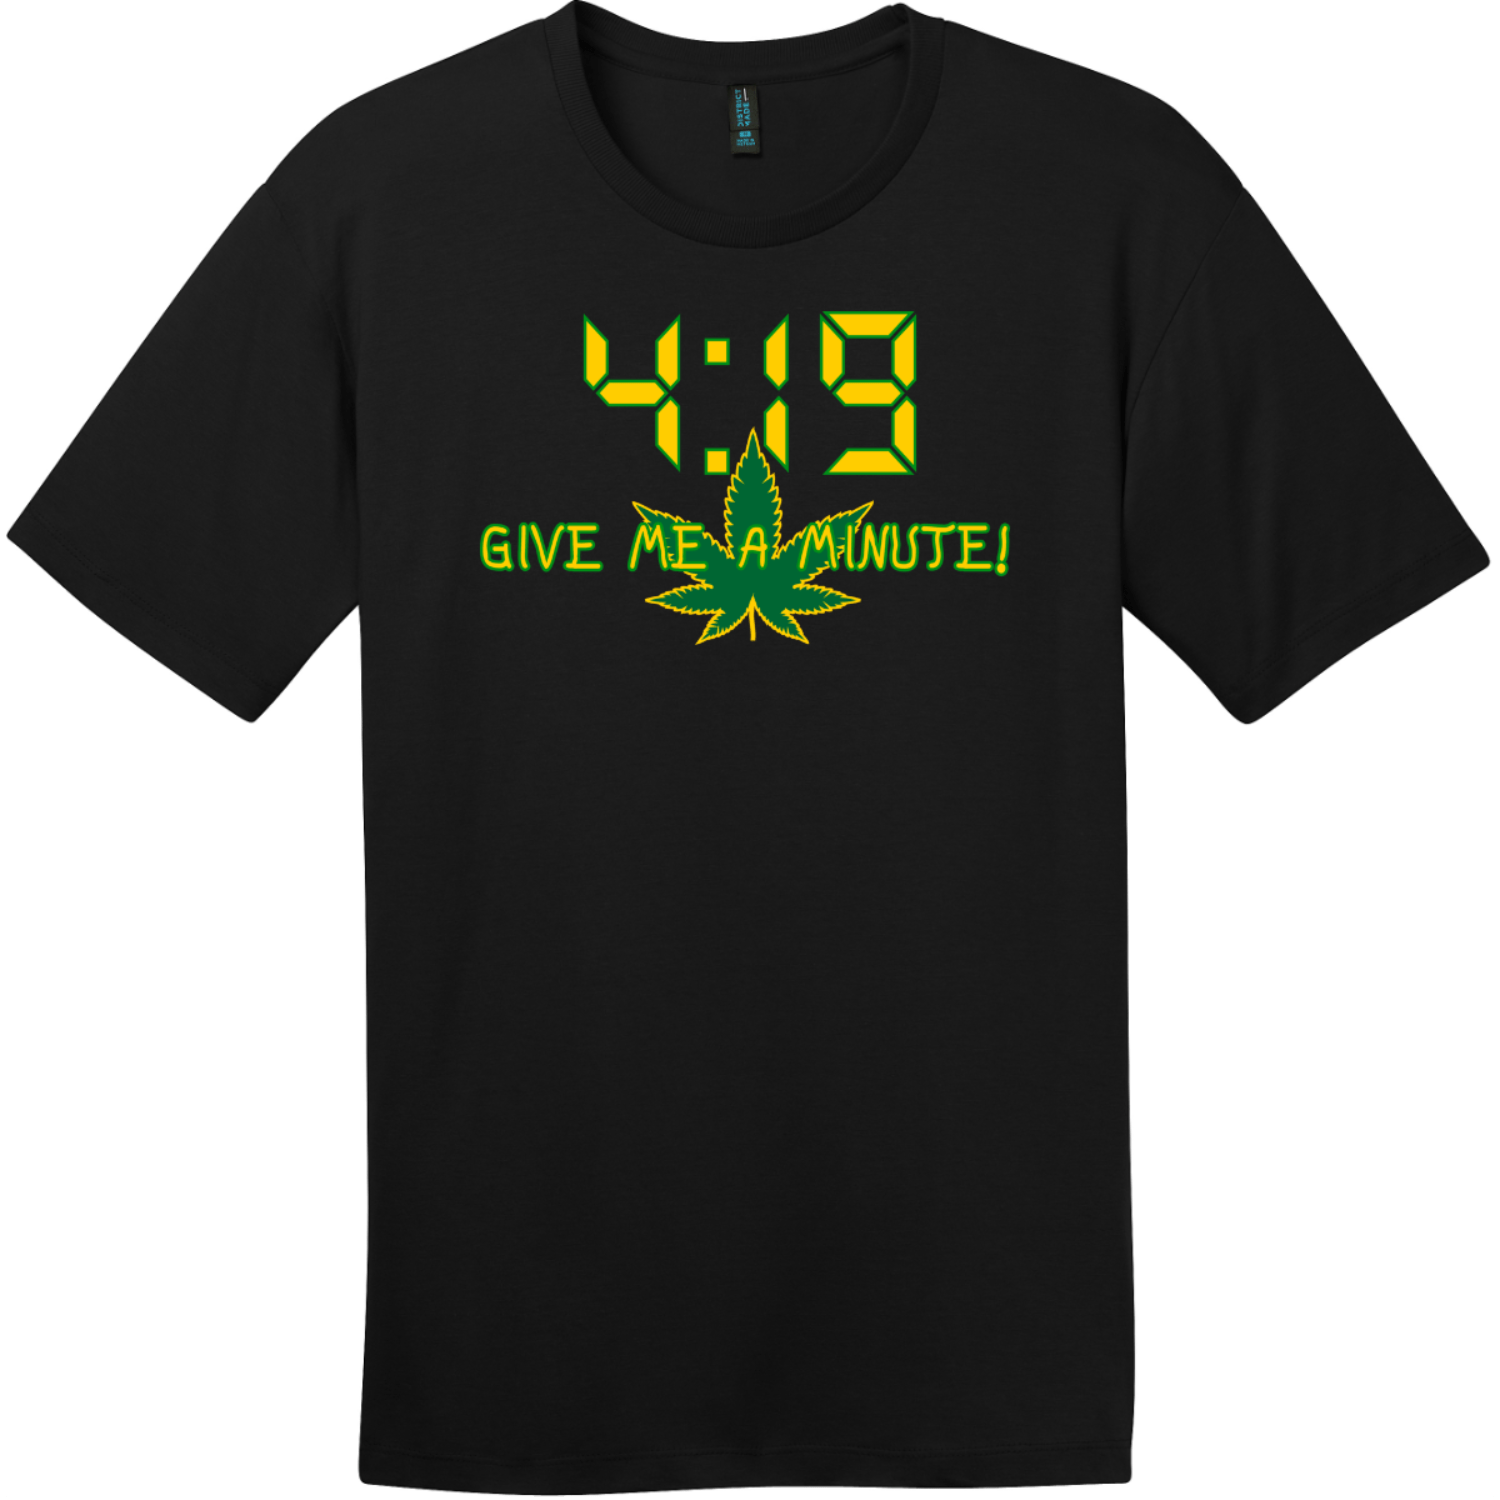 4:19 Give Me A Minute T-Shirt Jet Black District Perfect Weight Tee DT104